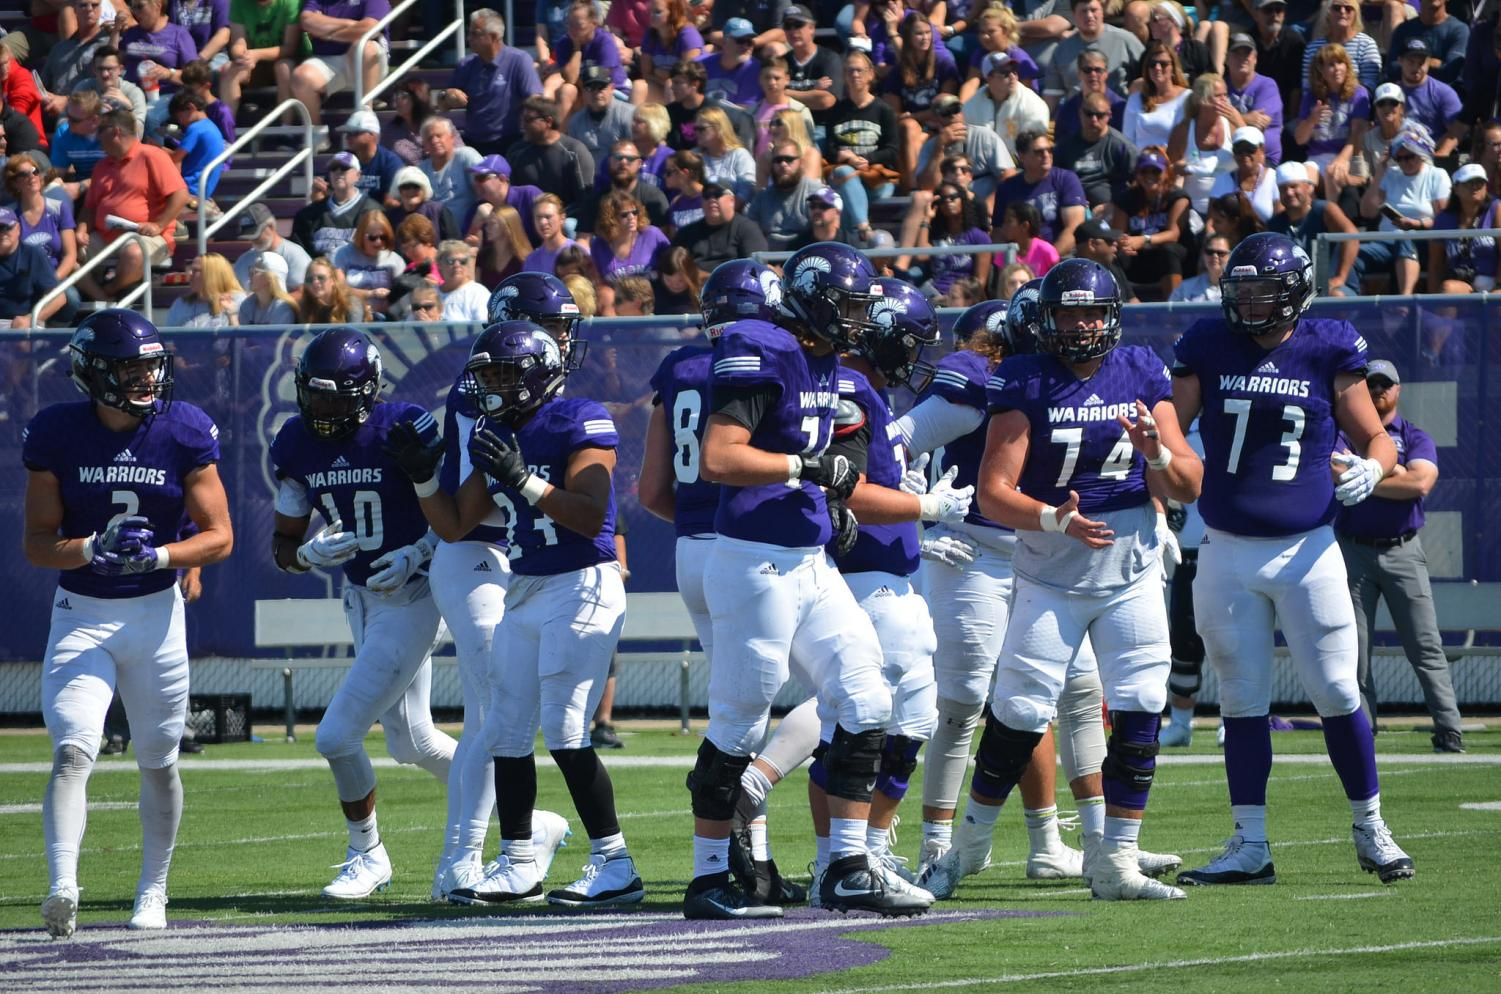 Members of the Winona State football team break from a huddle during the first home game of the season against the University of Sioux Falls South Dakota on Saturday, Sept. 8 in the Altra Credit Federal Union Stadium. The Warriors came out with a second win for the season, beating the Cougars 16-15.